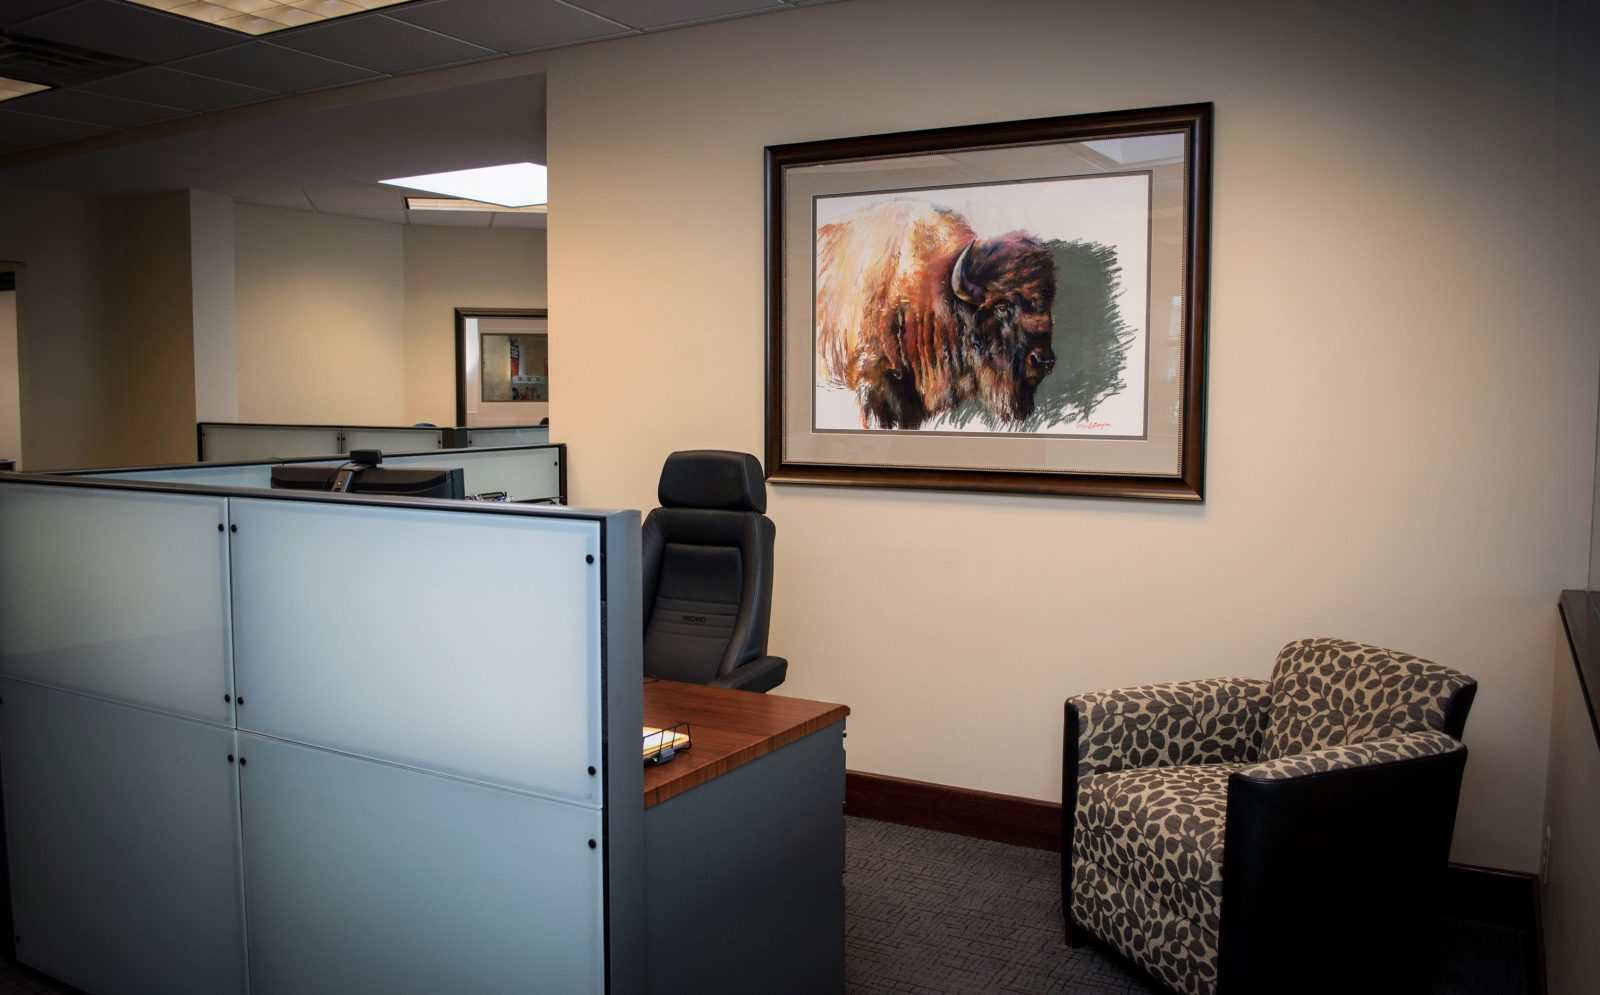 framed buffalo artwork on the wall of an office